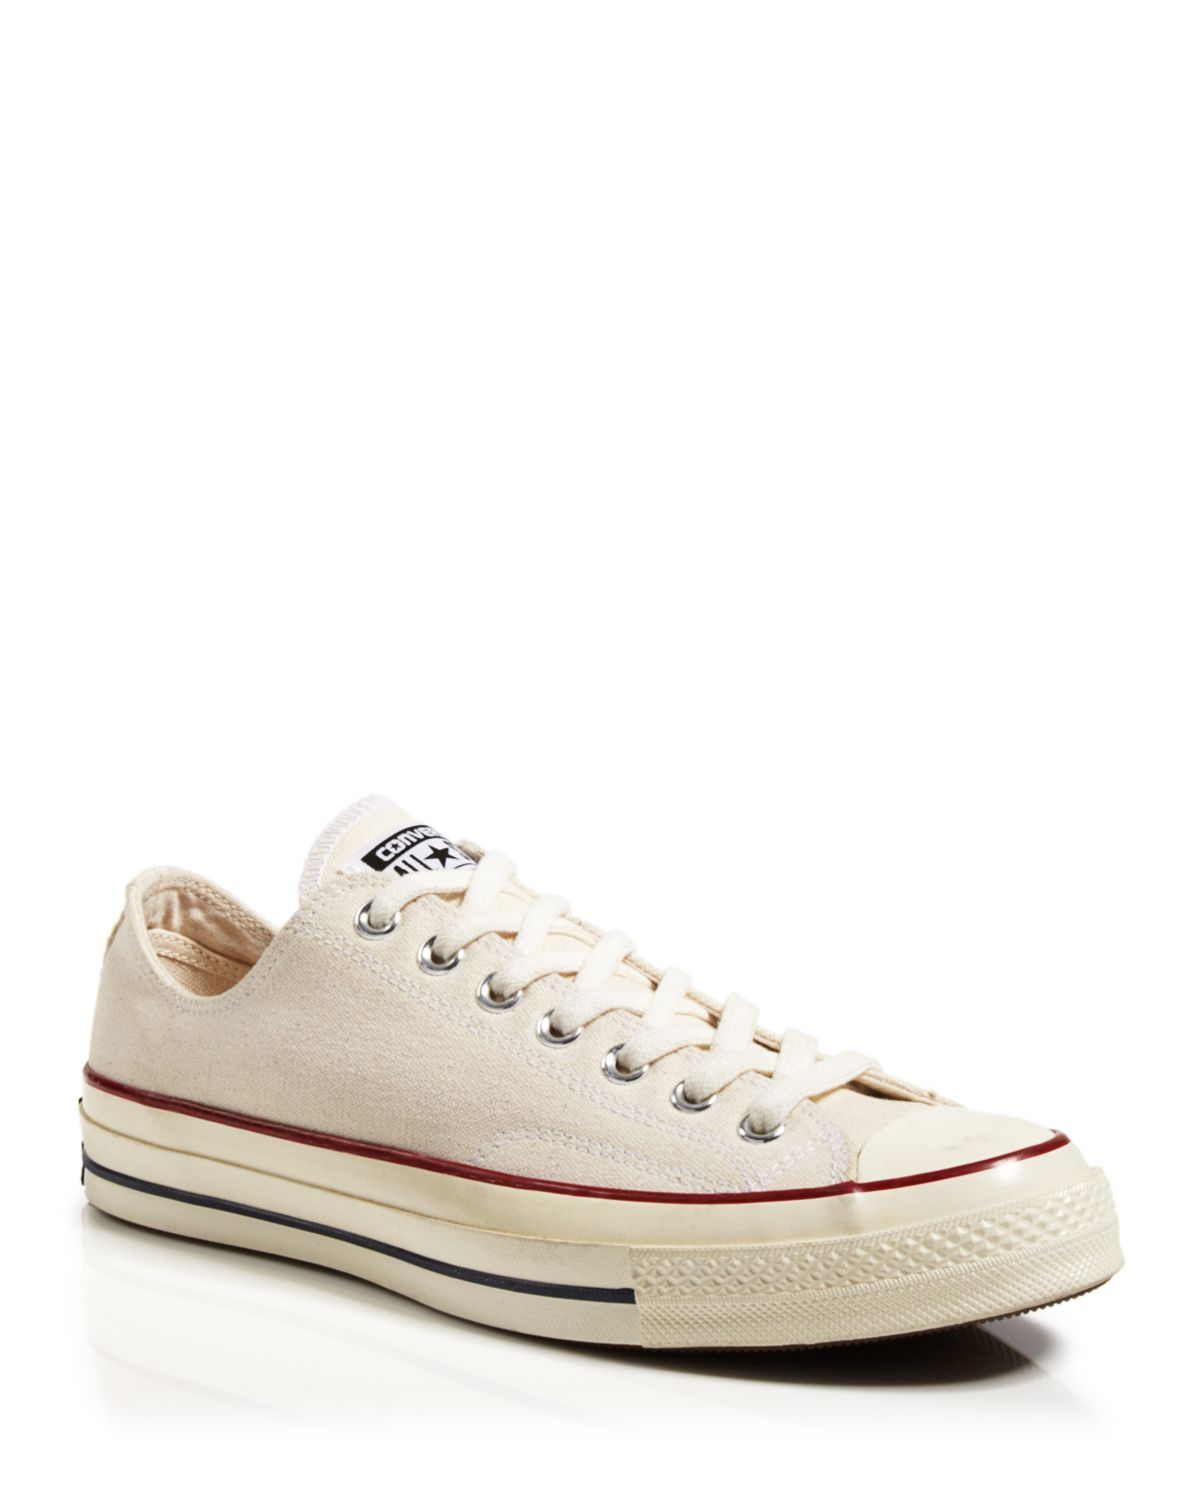 converse all 70 low top sneakers in white white